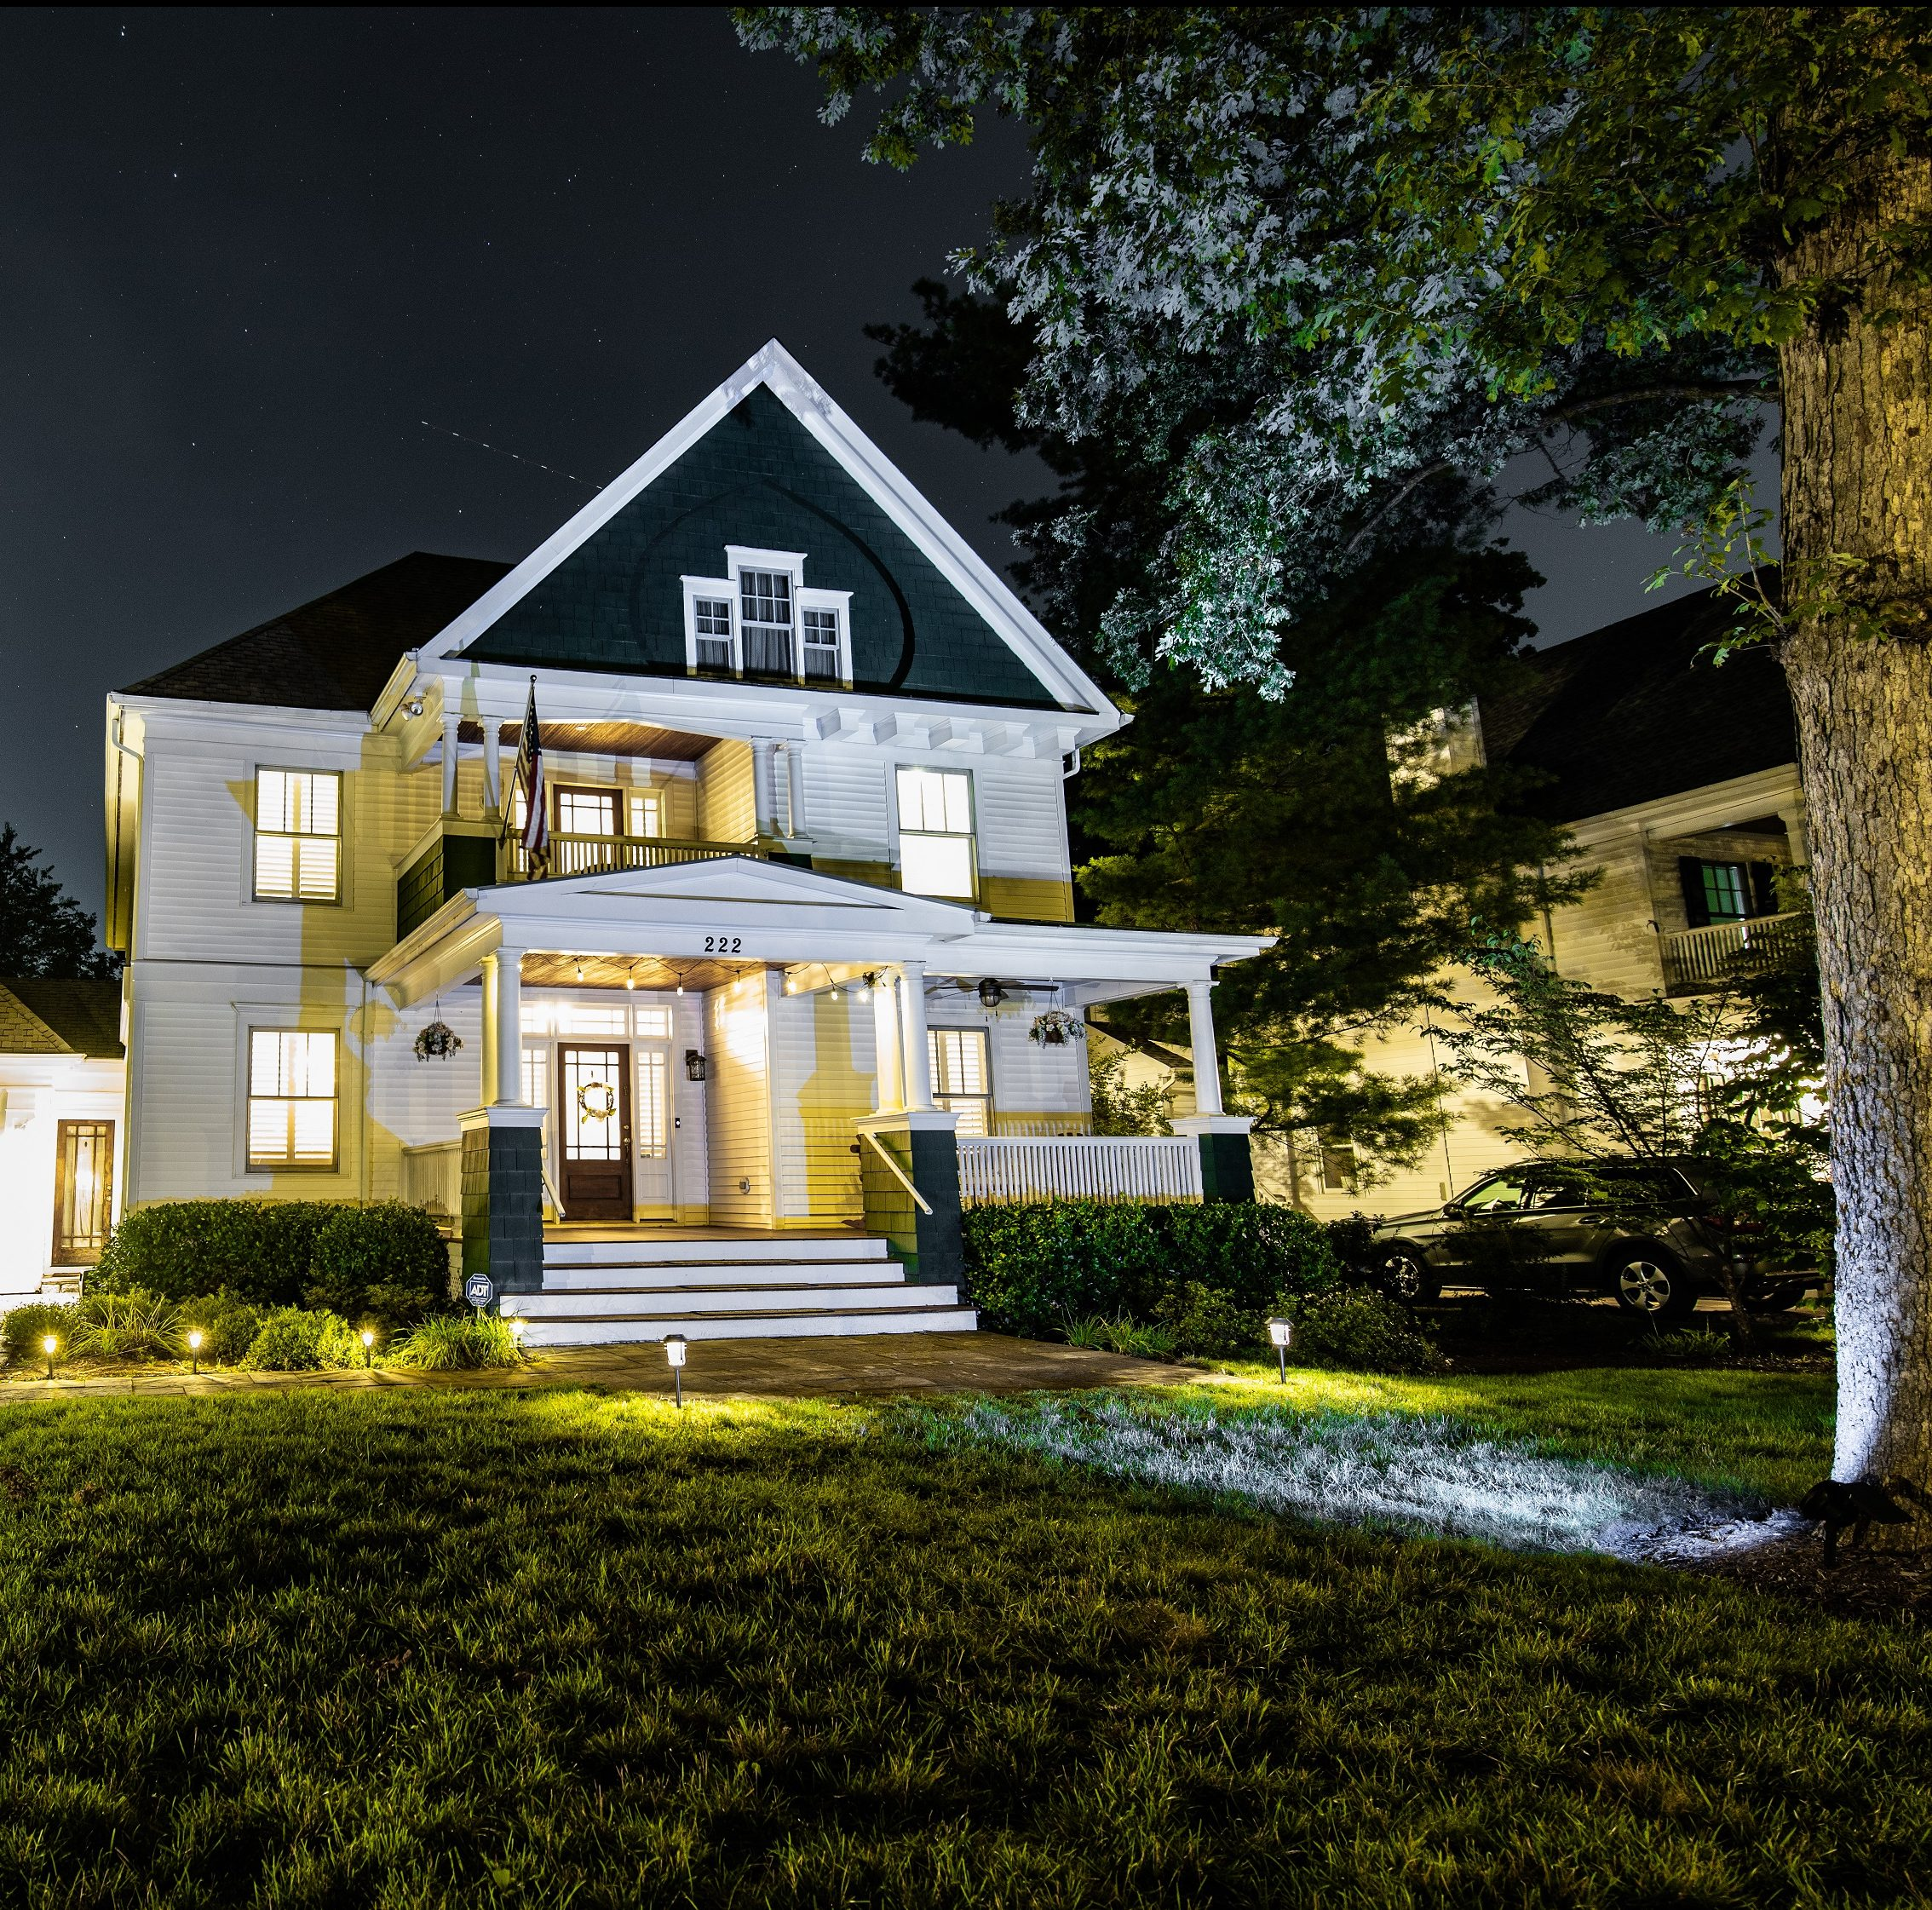 Evening scene of well lit home with solar lighting lining the garden bed in front of the house's porch.